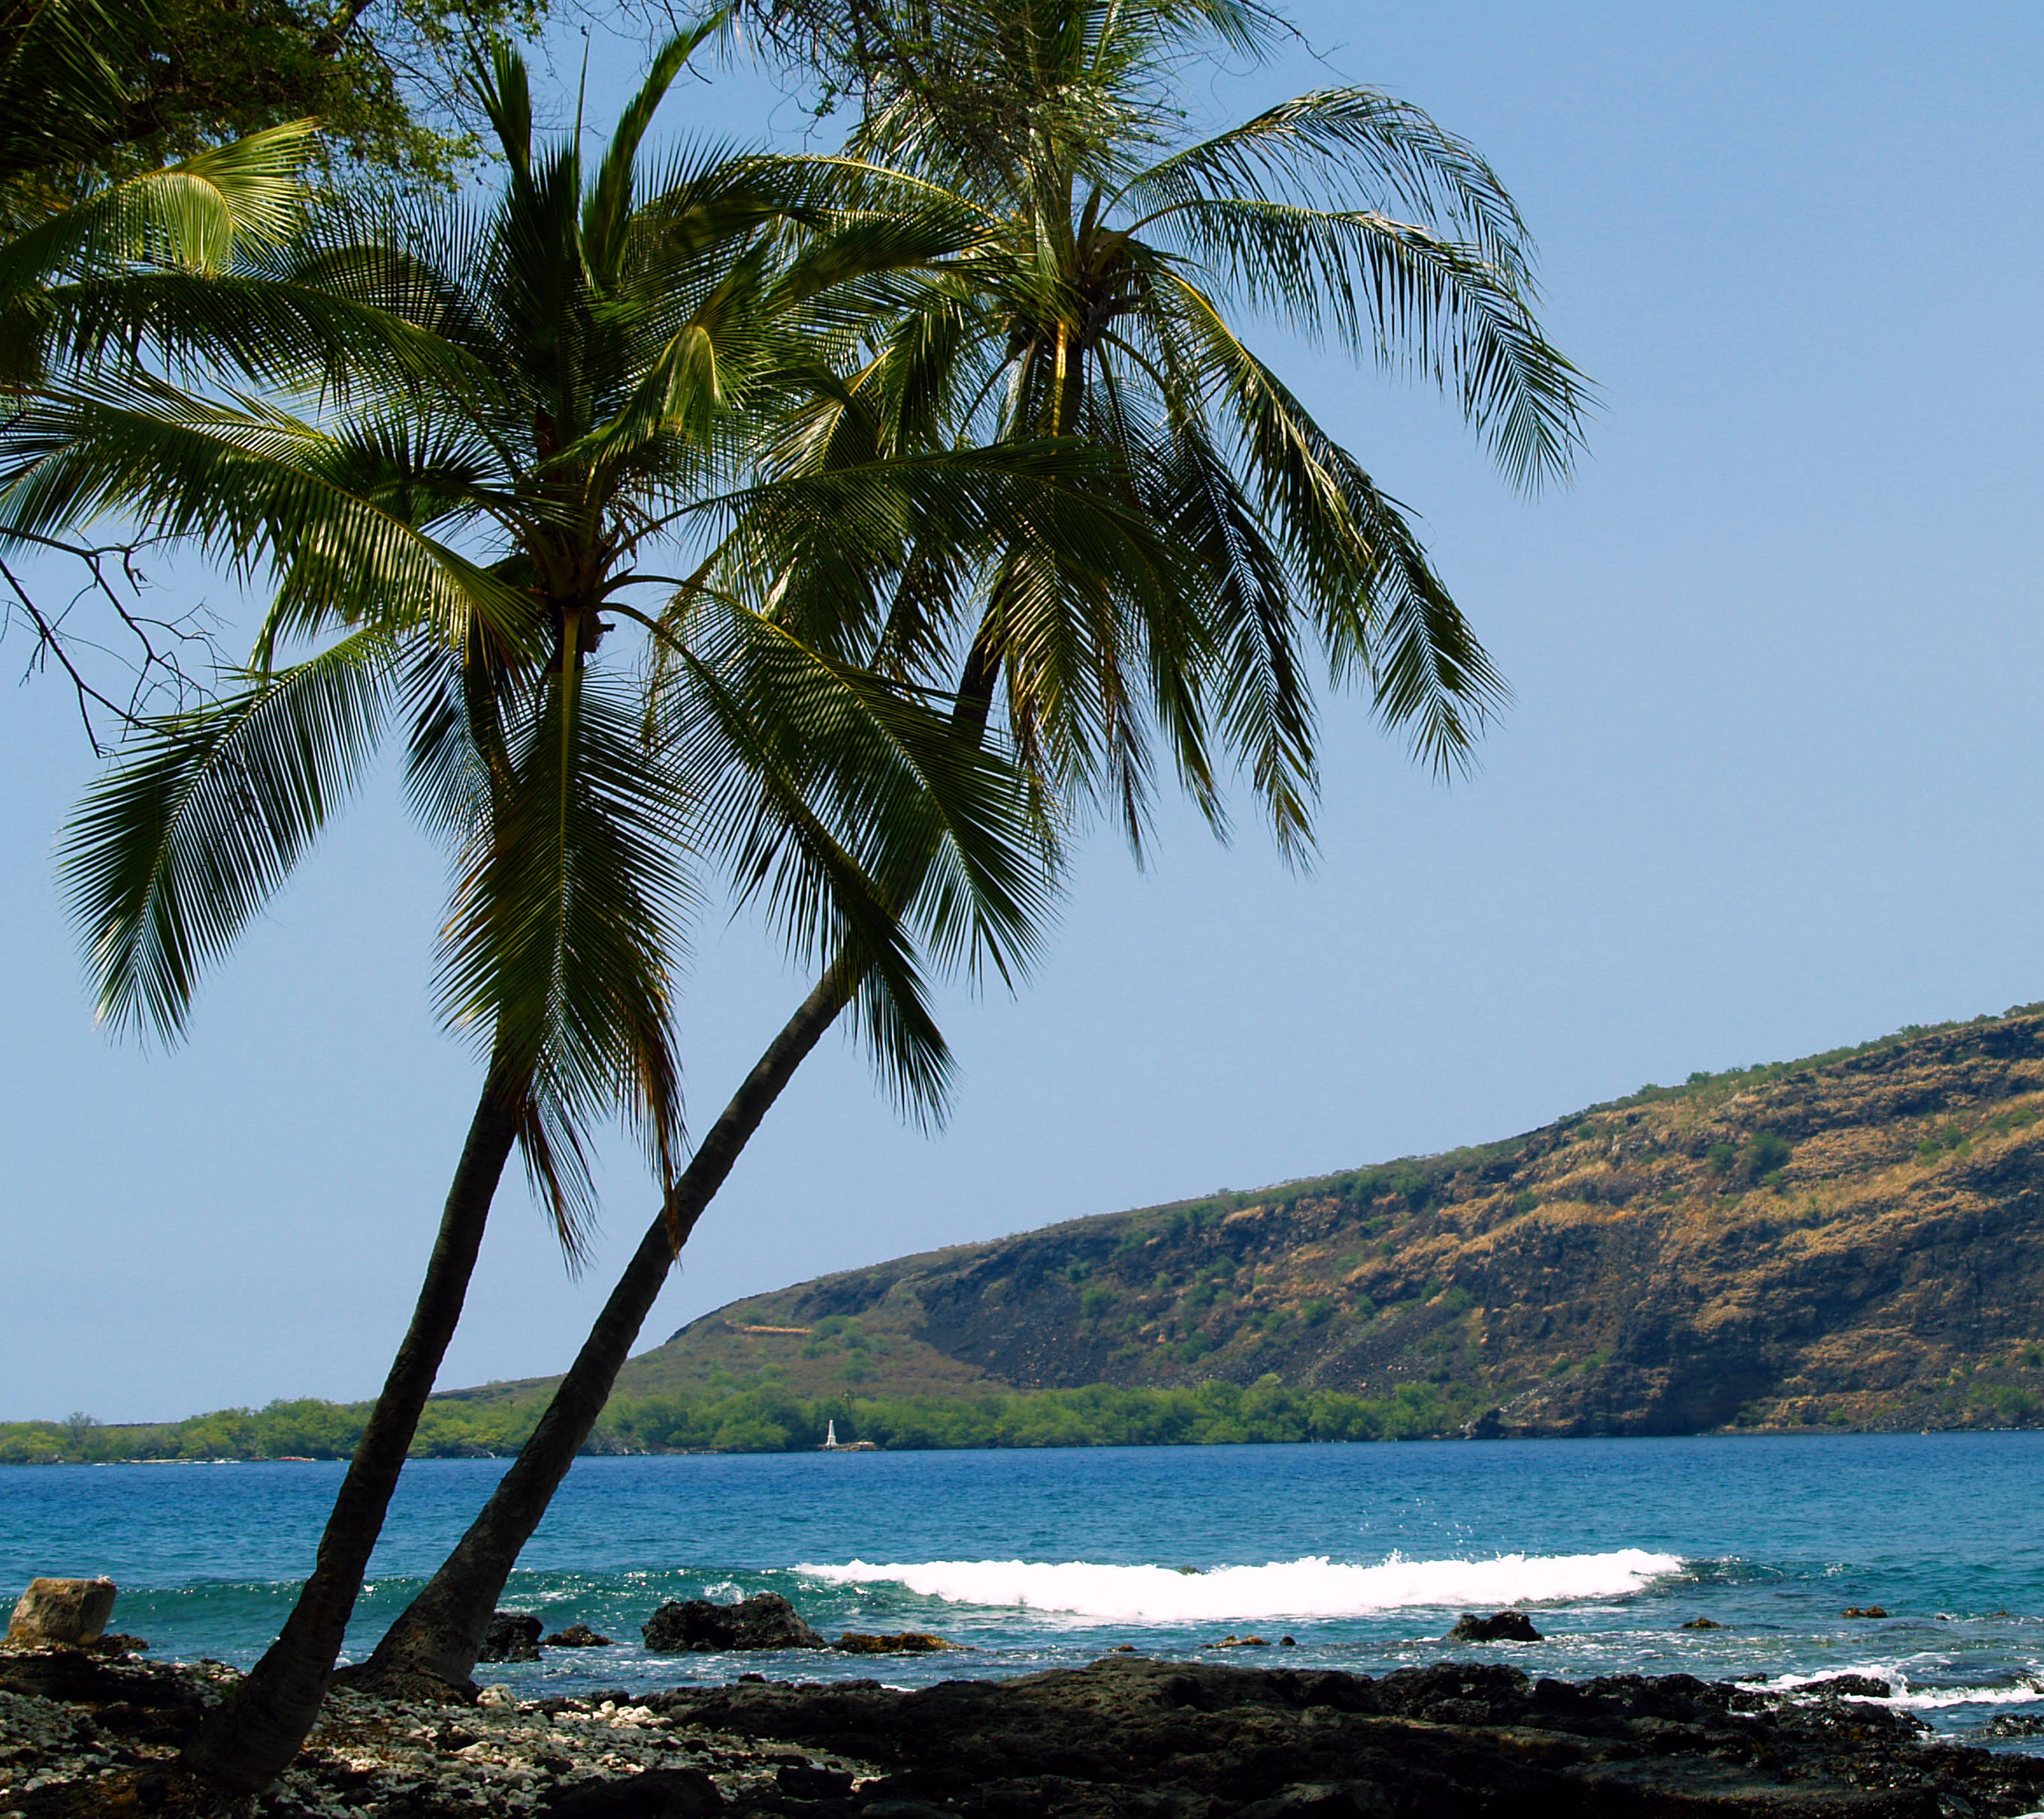 Big Island Beaches: Captain Cook Monument And Kealakekua Bay From Manini Beach